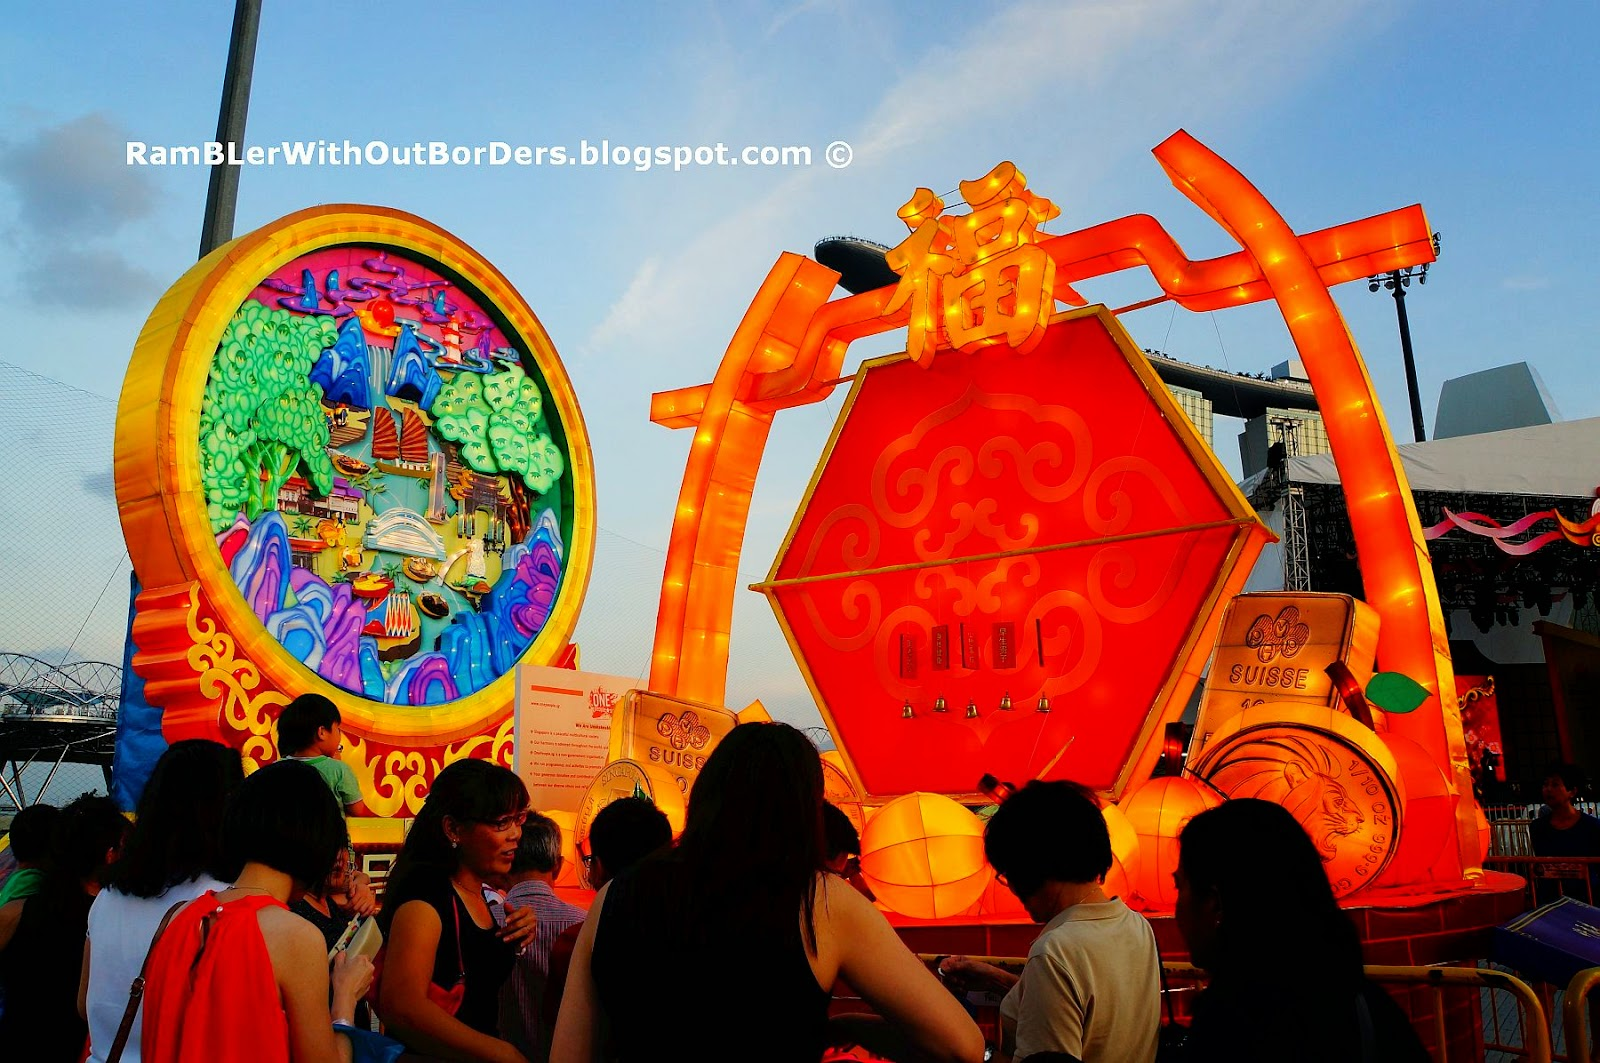 Wishing Well Lantern, River Hongbao 2015, Singapore